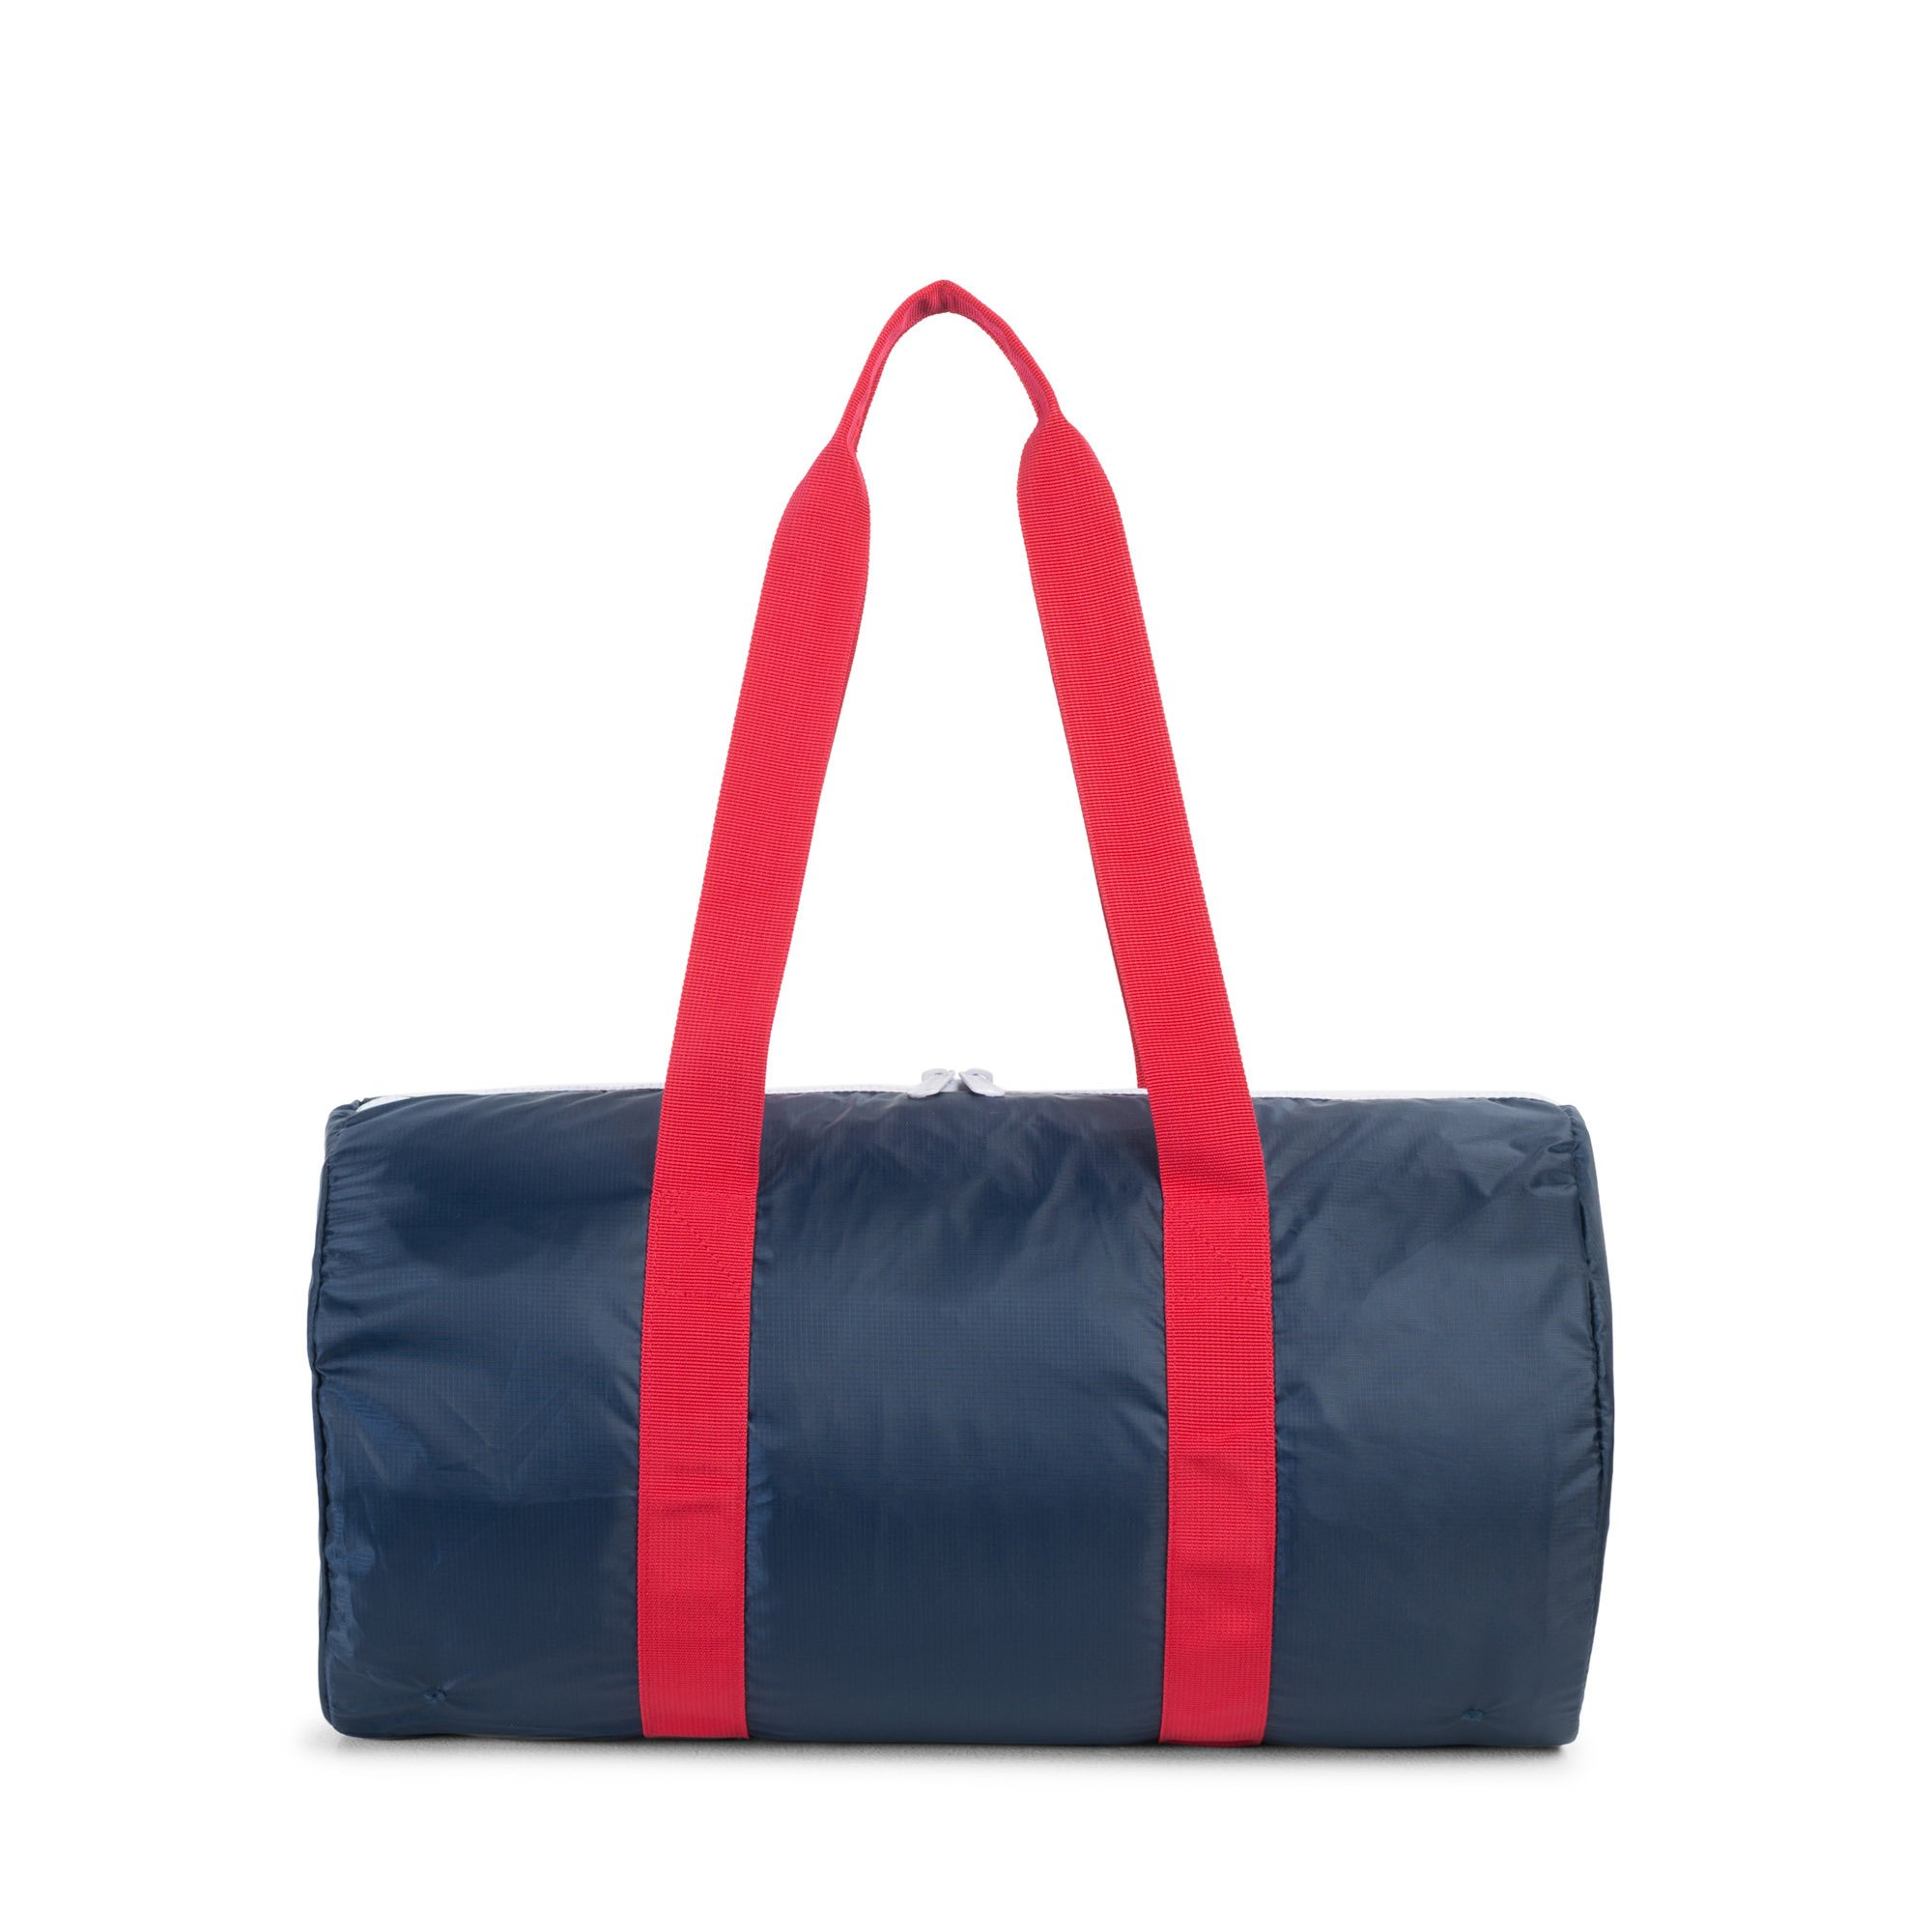 Herschel Packable Duffle Navy/Red